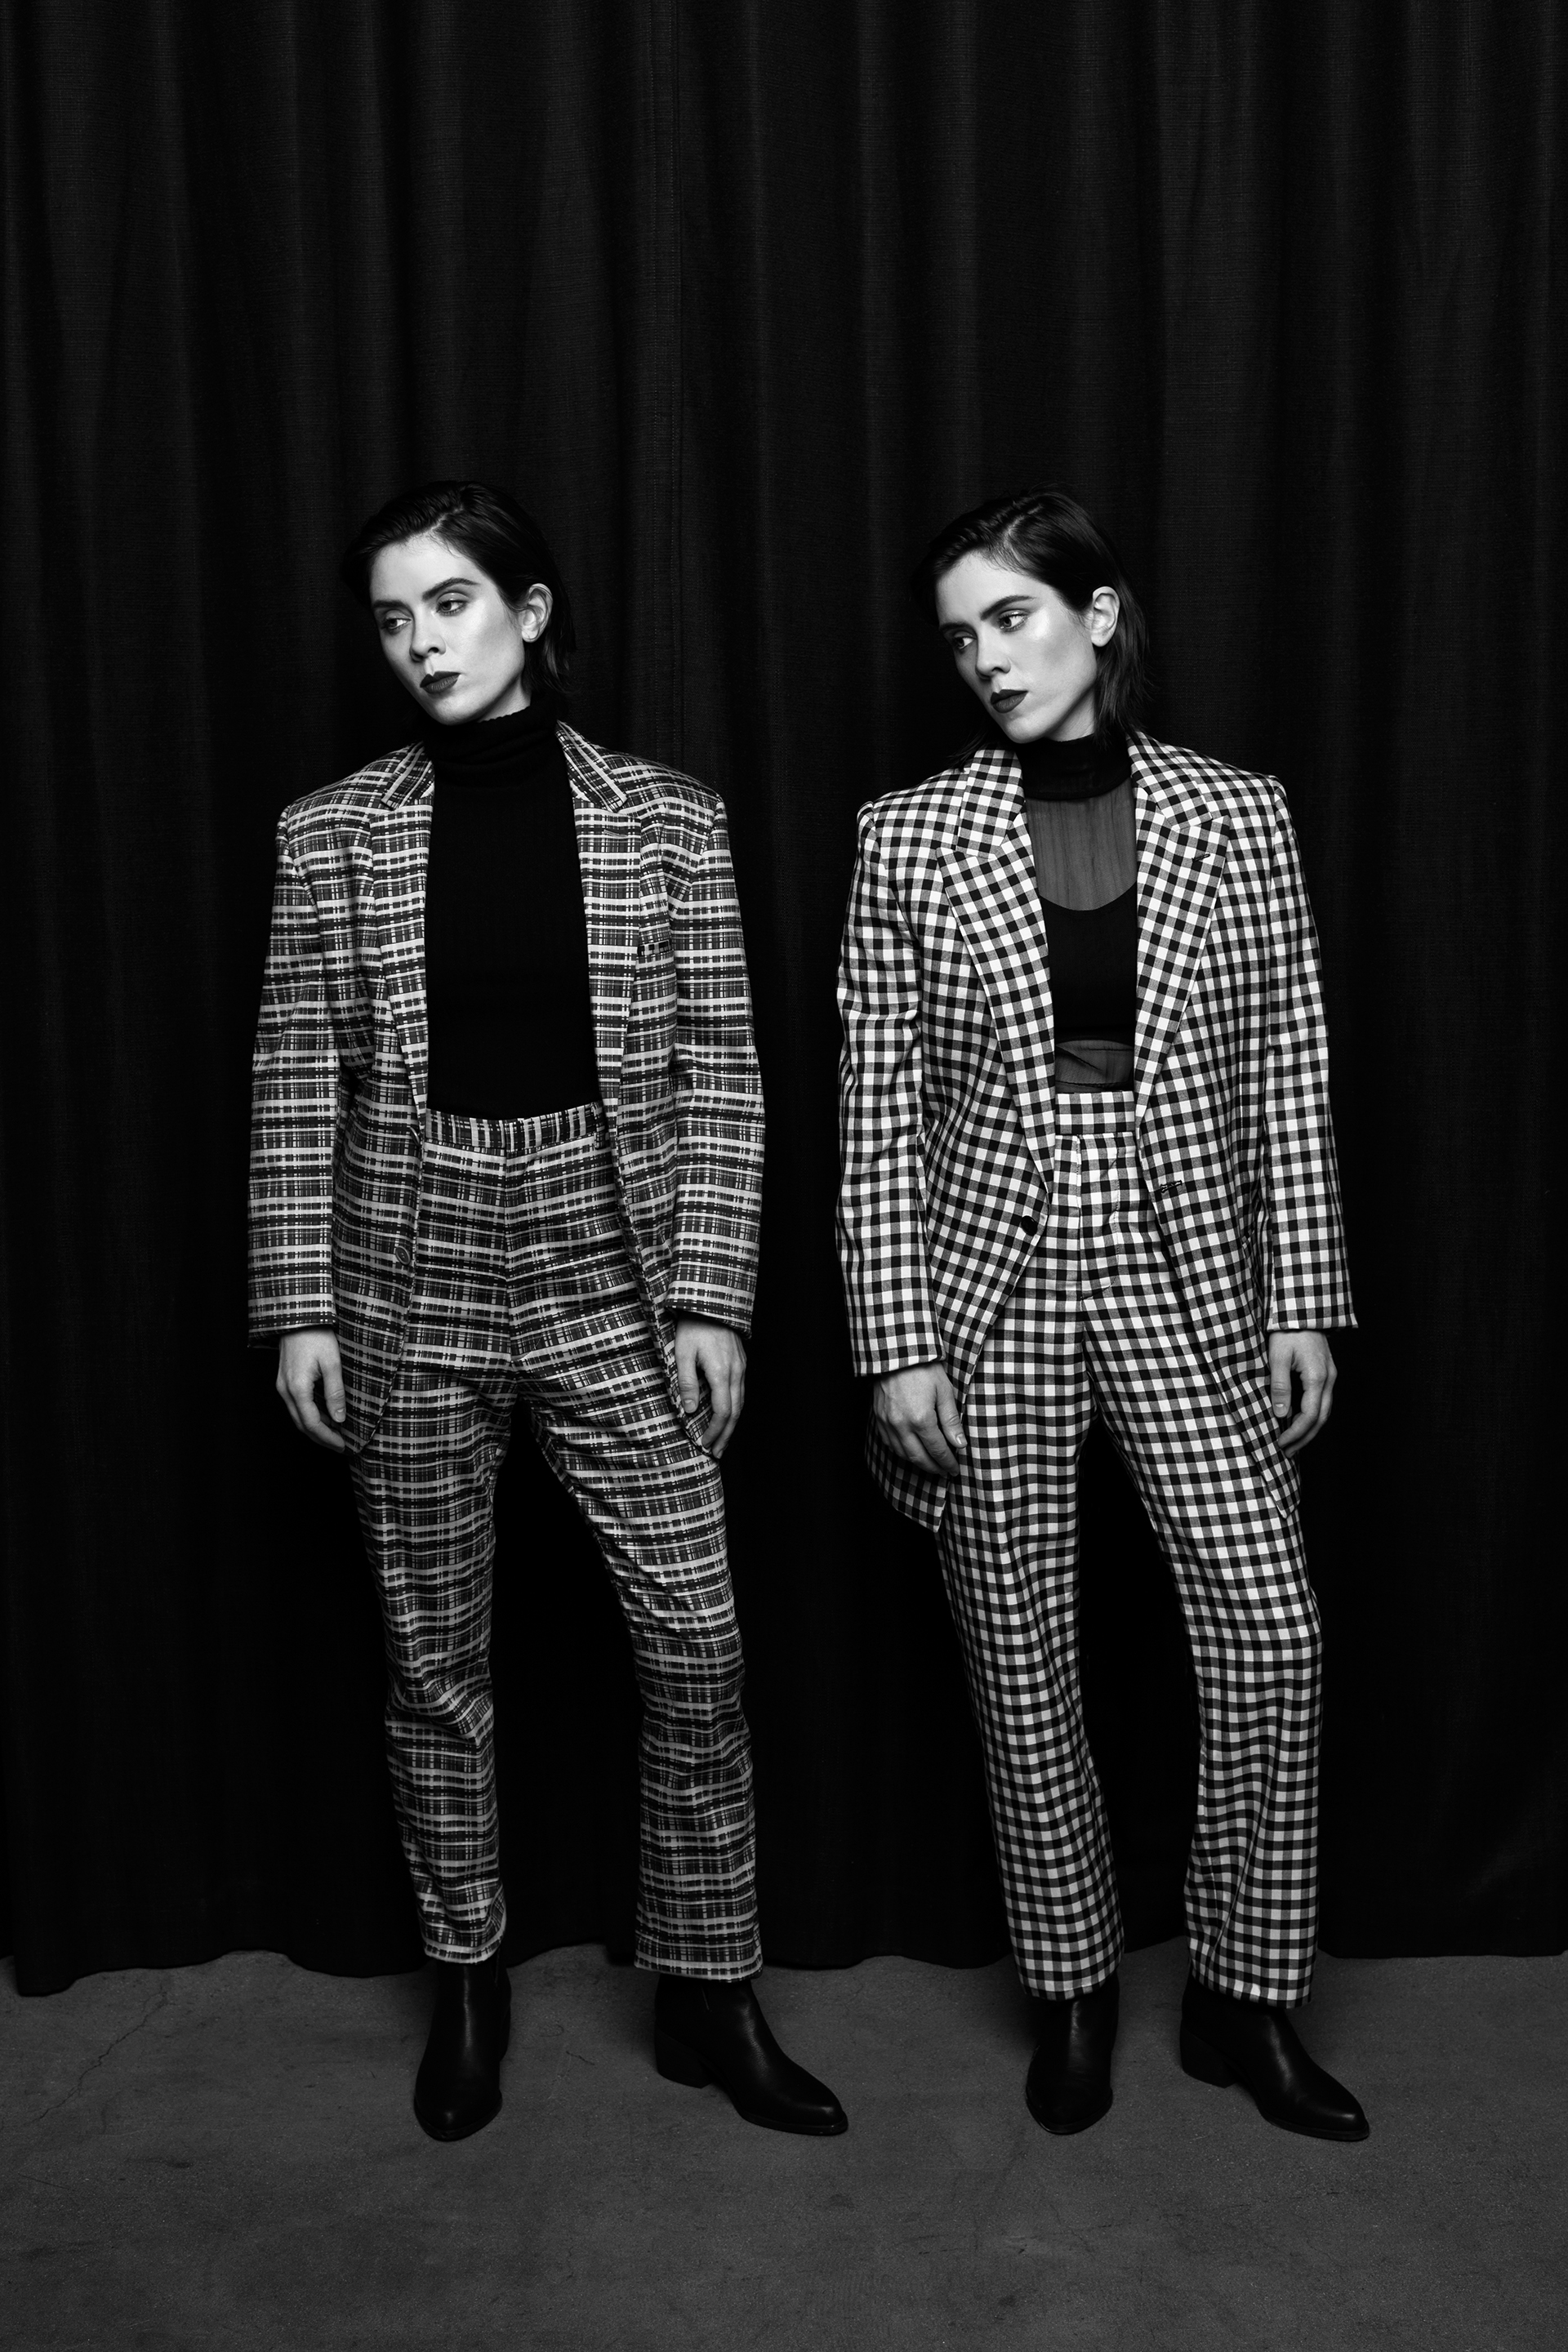 TeganAndSara-twins small.jpg